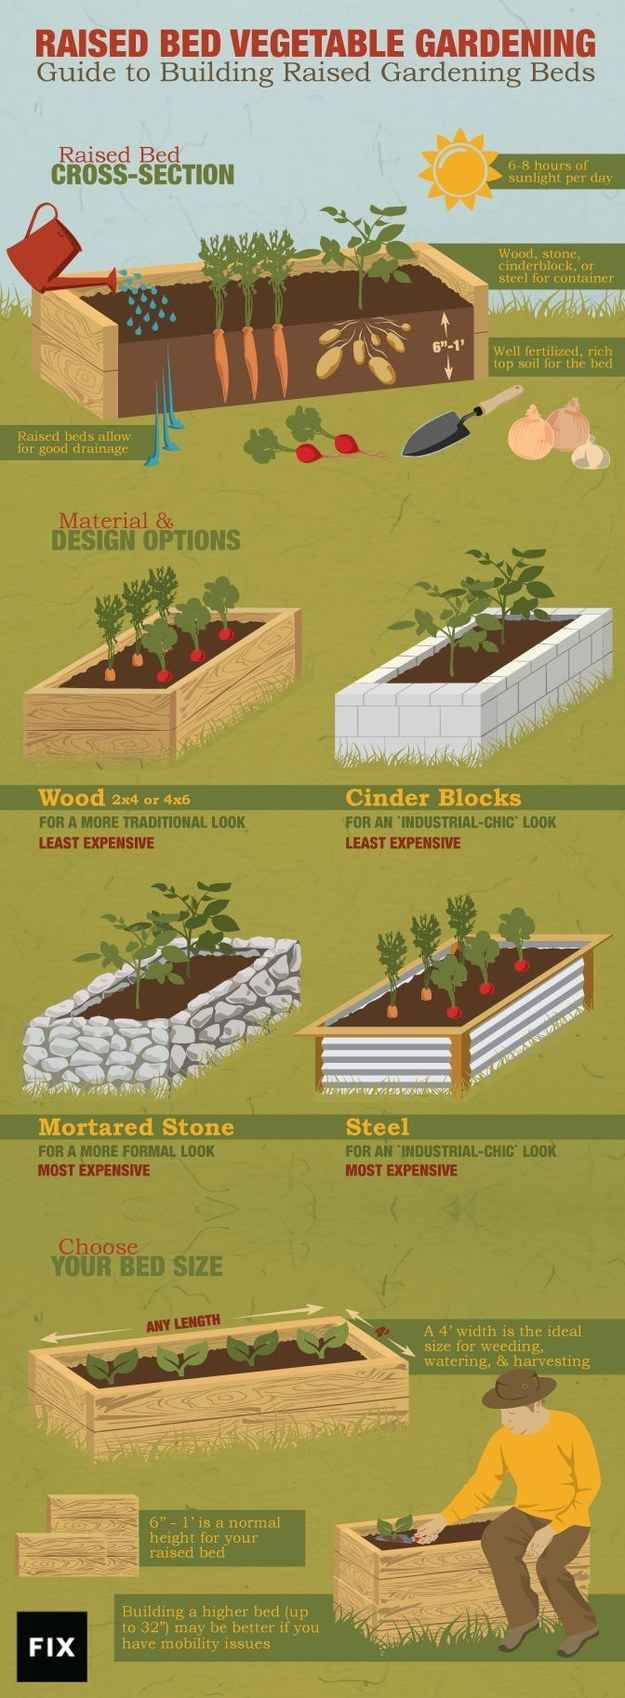 raised gardening beds keep vegetables away from contaminated soil can deter some pests and are easier on backs and knees here s some information about how  [ 625 x 1698 Pixel ]